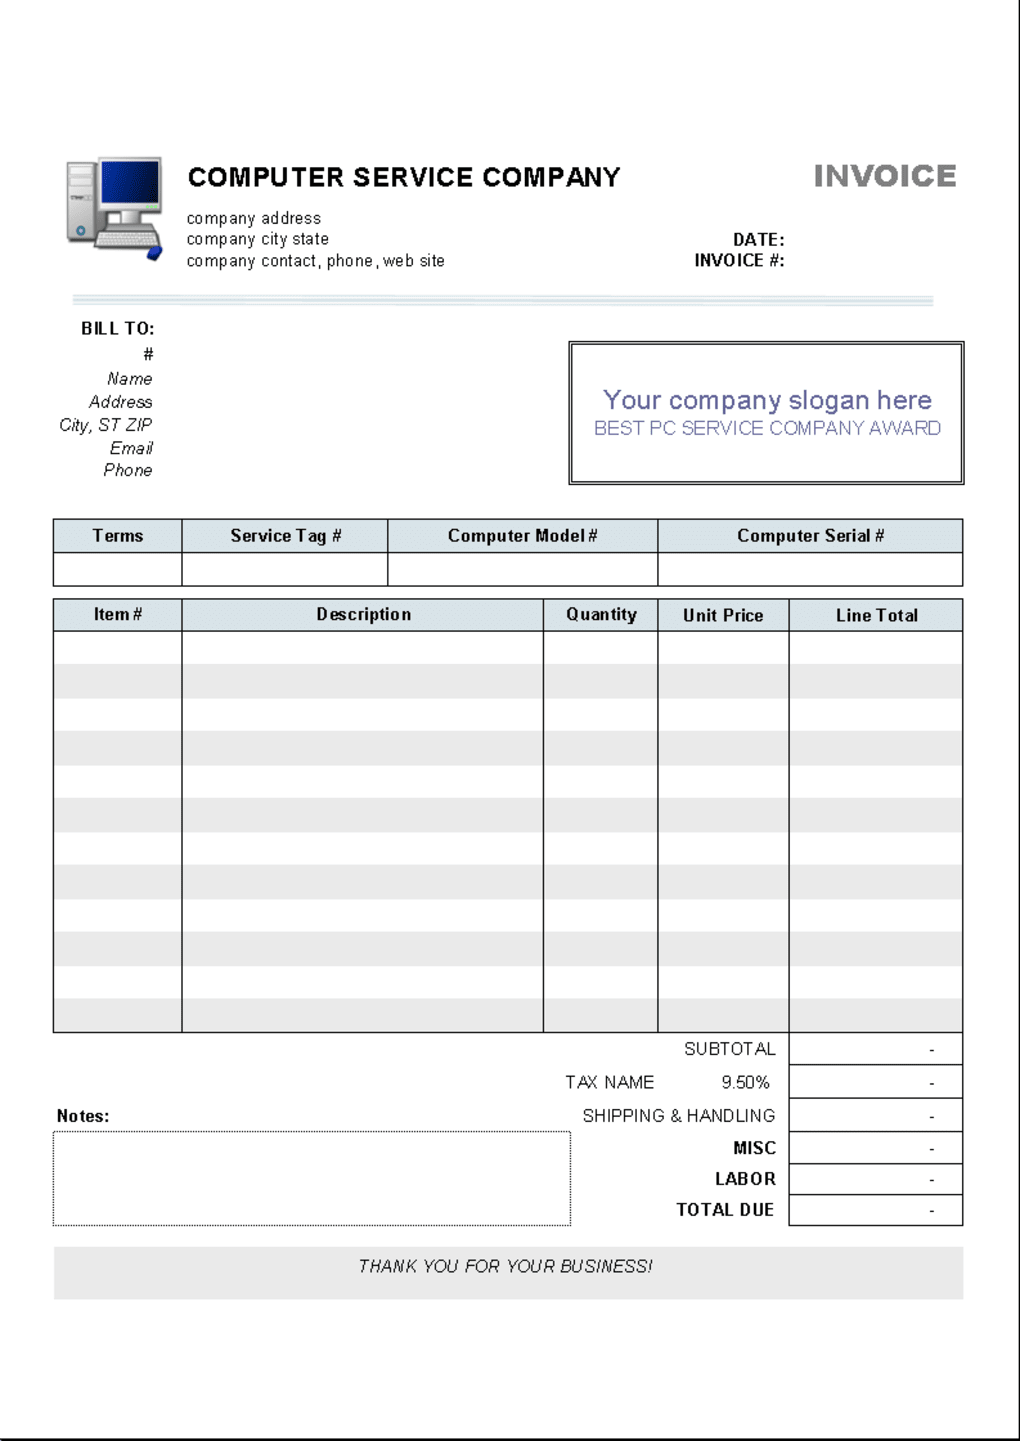 Computer service invoice template download computer service invoice template 12 screenshots fbccfo Images